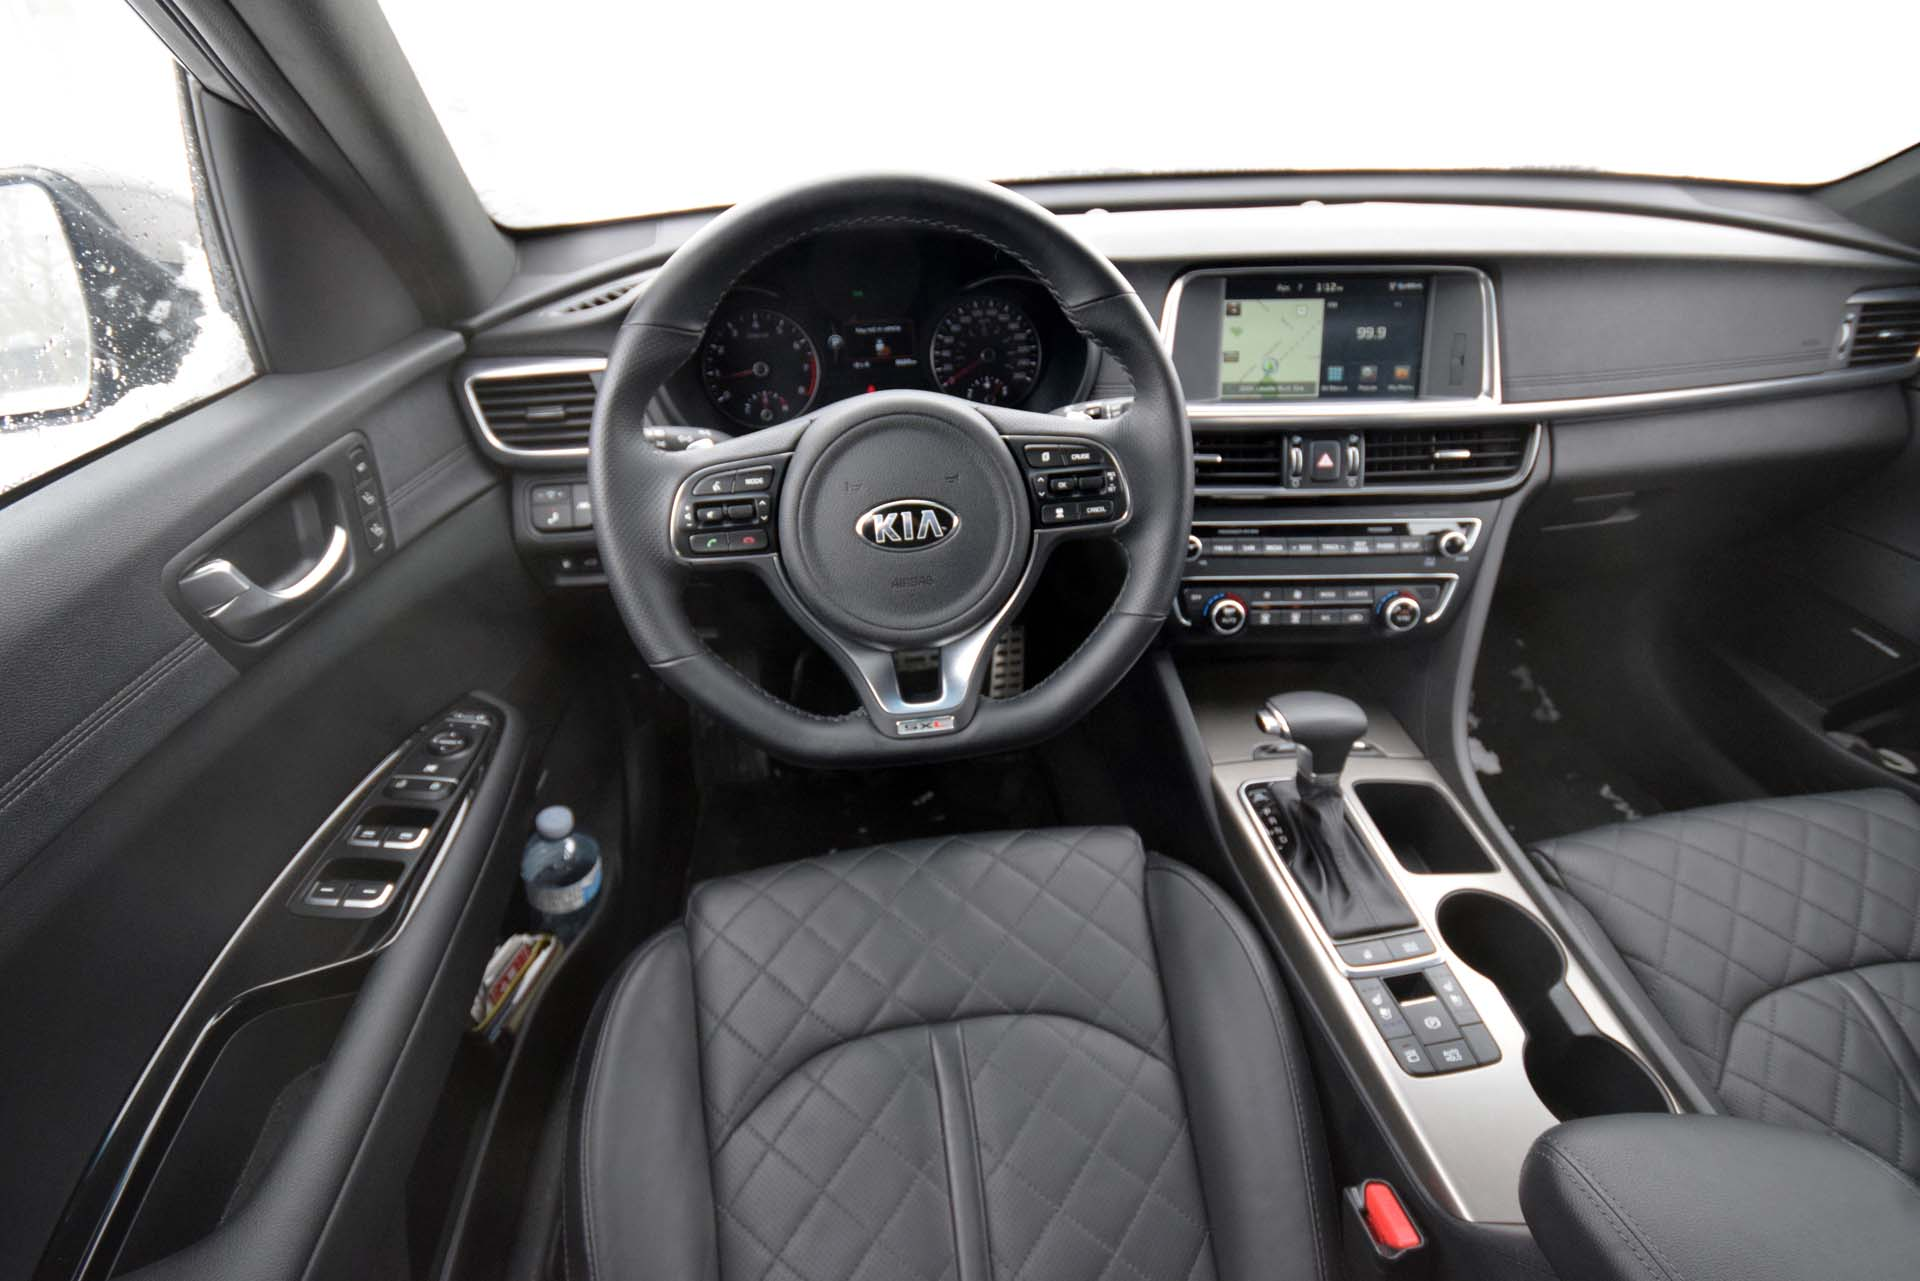 performance turbo review sxl kia drive price first optima redesign and